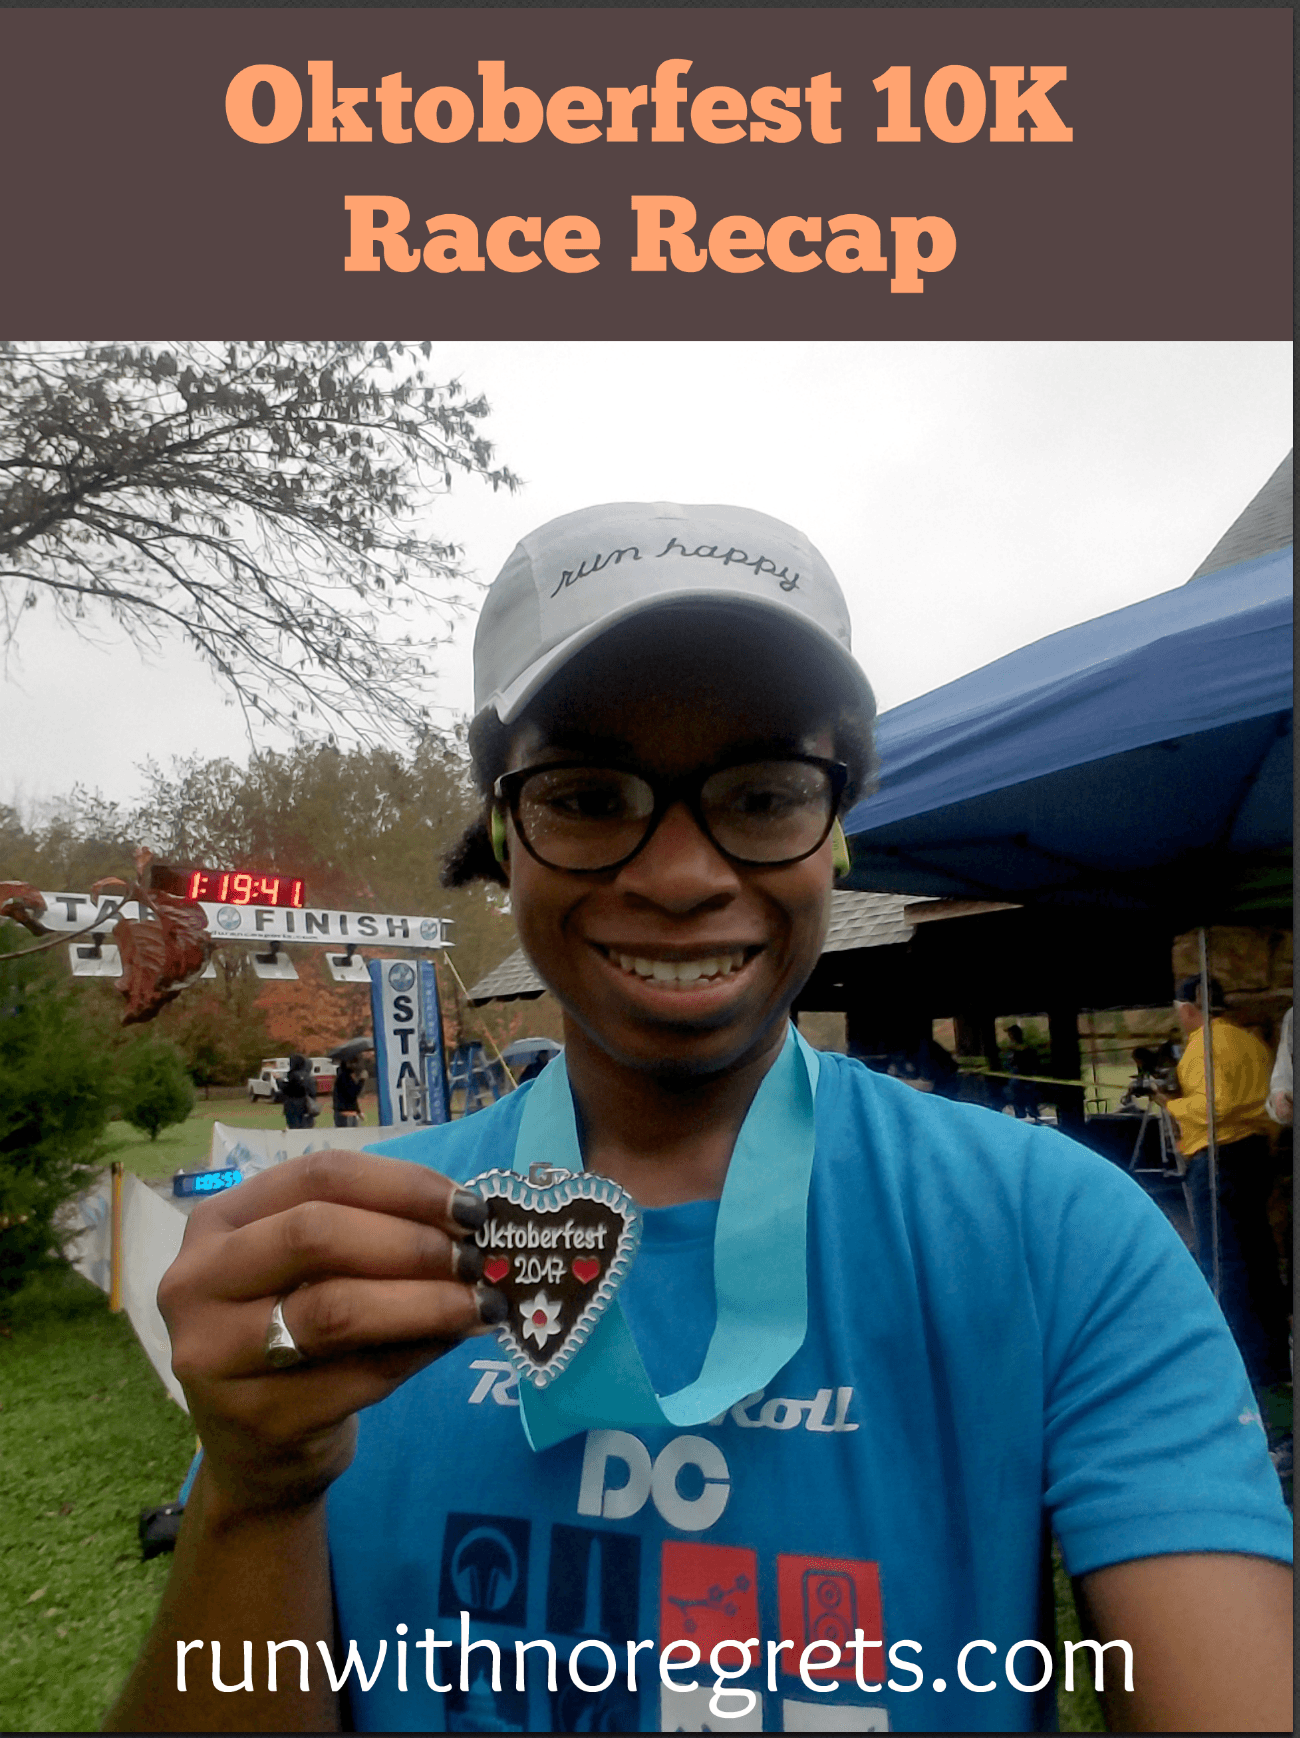 Check out my recap of the Oktoberfest 10K that took place in Northeast Philadelphia's Pennypack Park! Find more race reviews at runwithnoregrets.com!